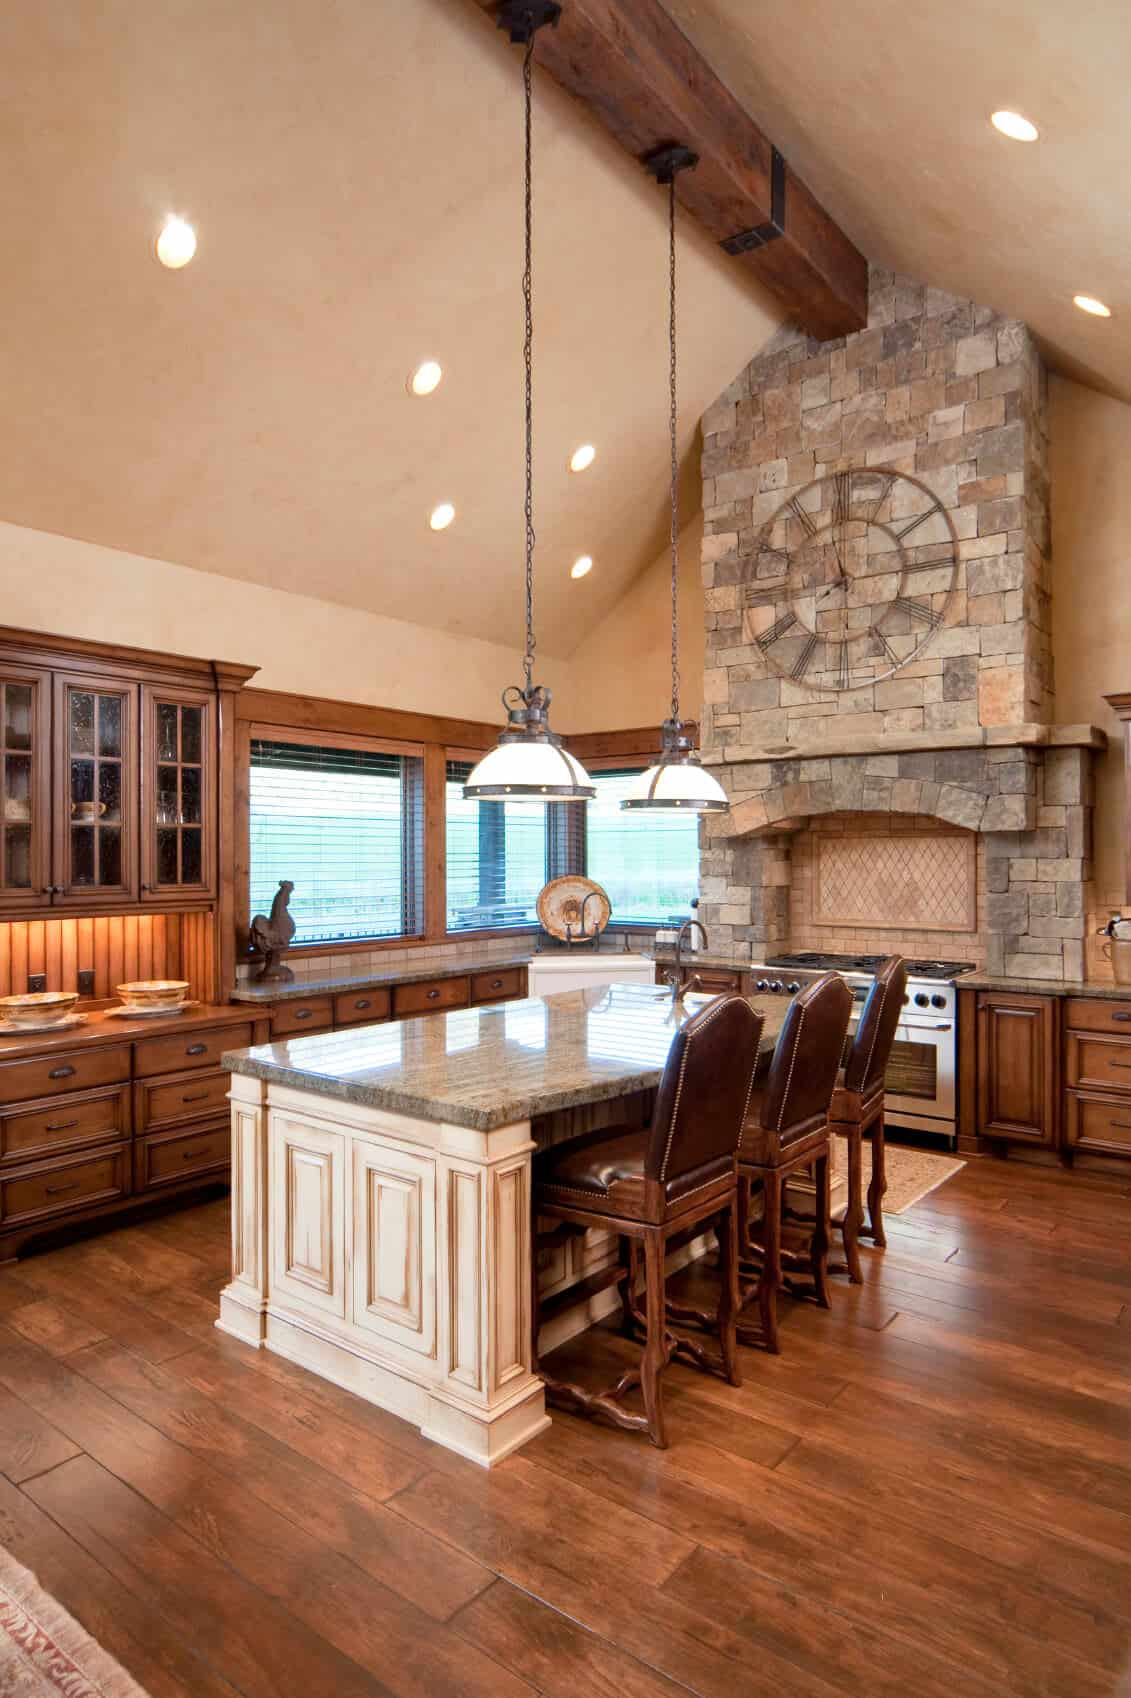 Doesn't look like a residential kitchen, does it? The center of attraction in this majestic kitchen is, without doubt, the brick vent hood with the enormous clock piece. The floor is two-tones whereas ceiling and central light are carefully placed to give this kitchen a true country atmosphere.